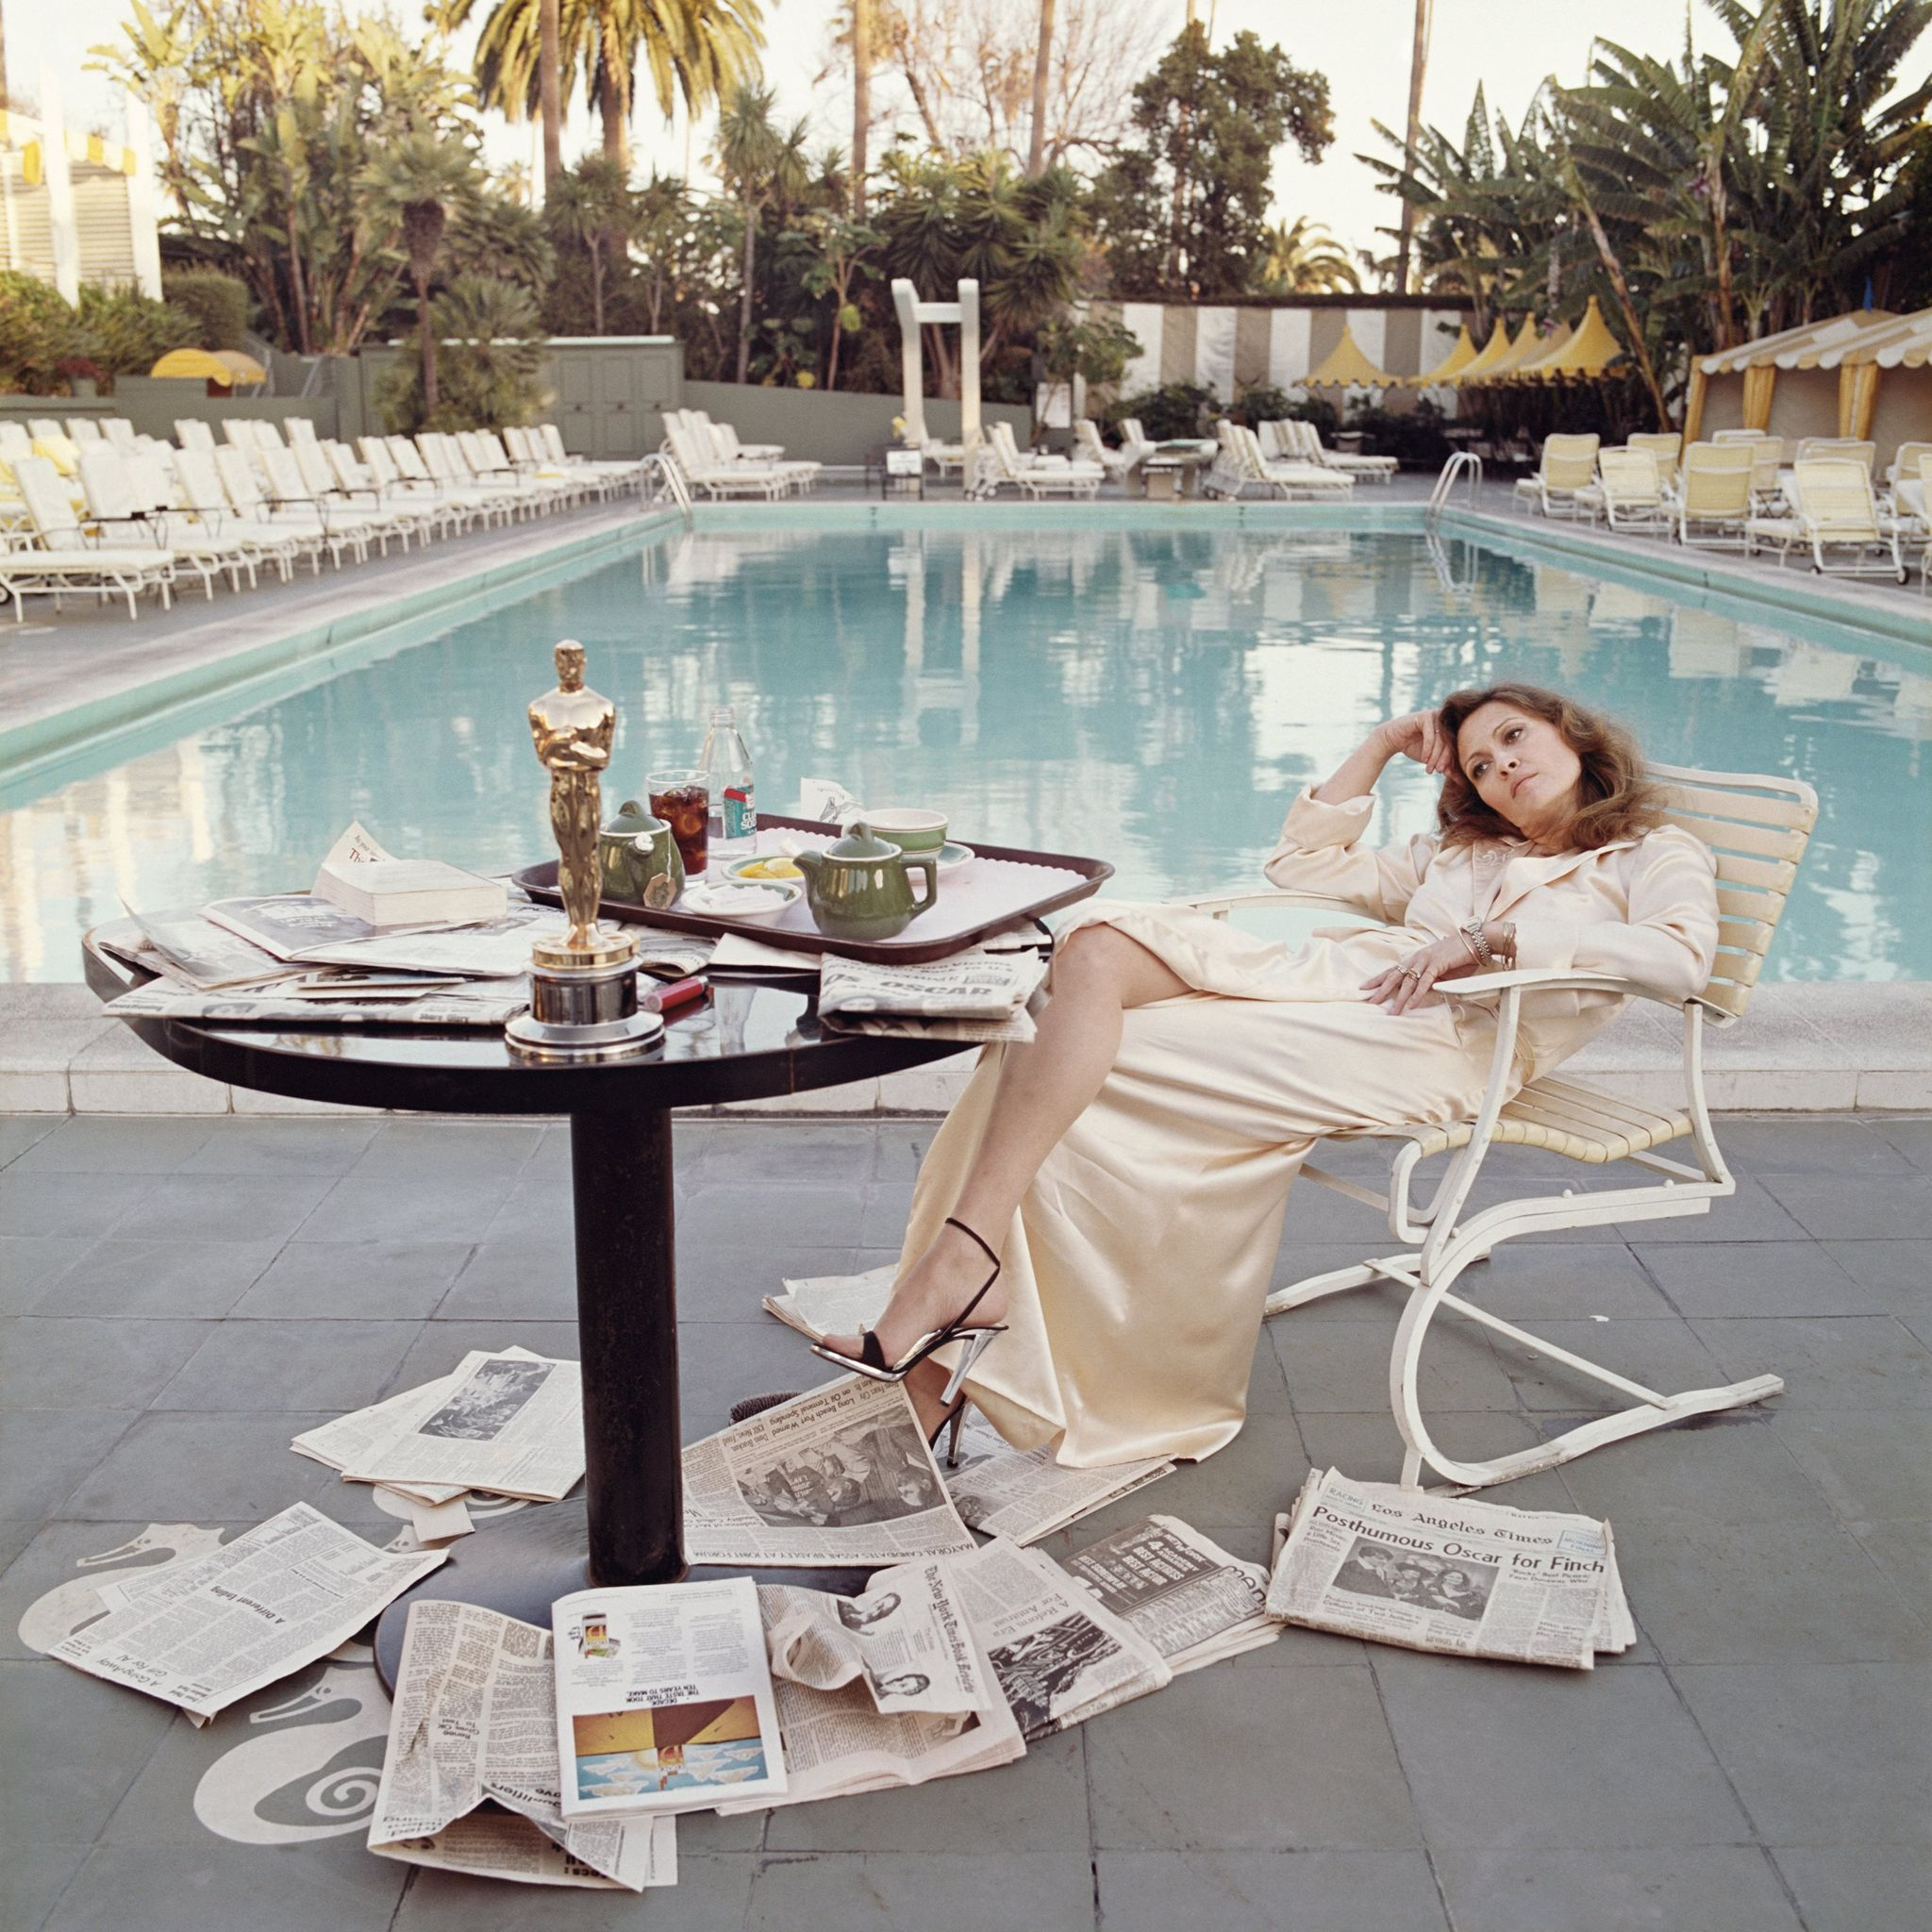 American actress Faye Dunaway by a pool with newspapers at the Beverley Hills Hotel in 1977